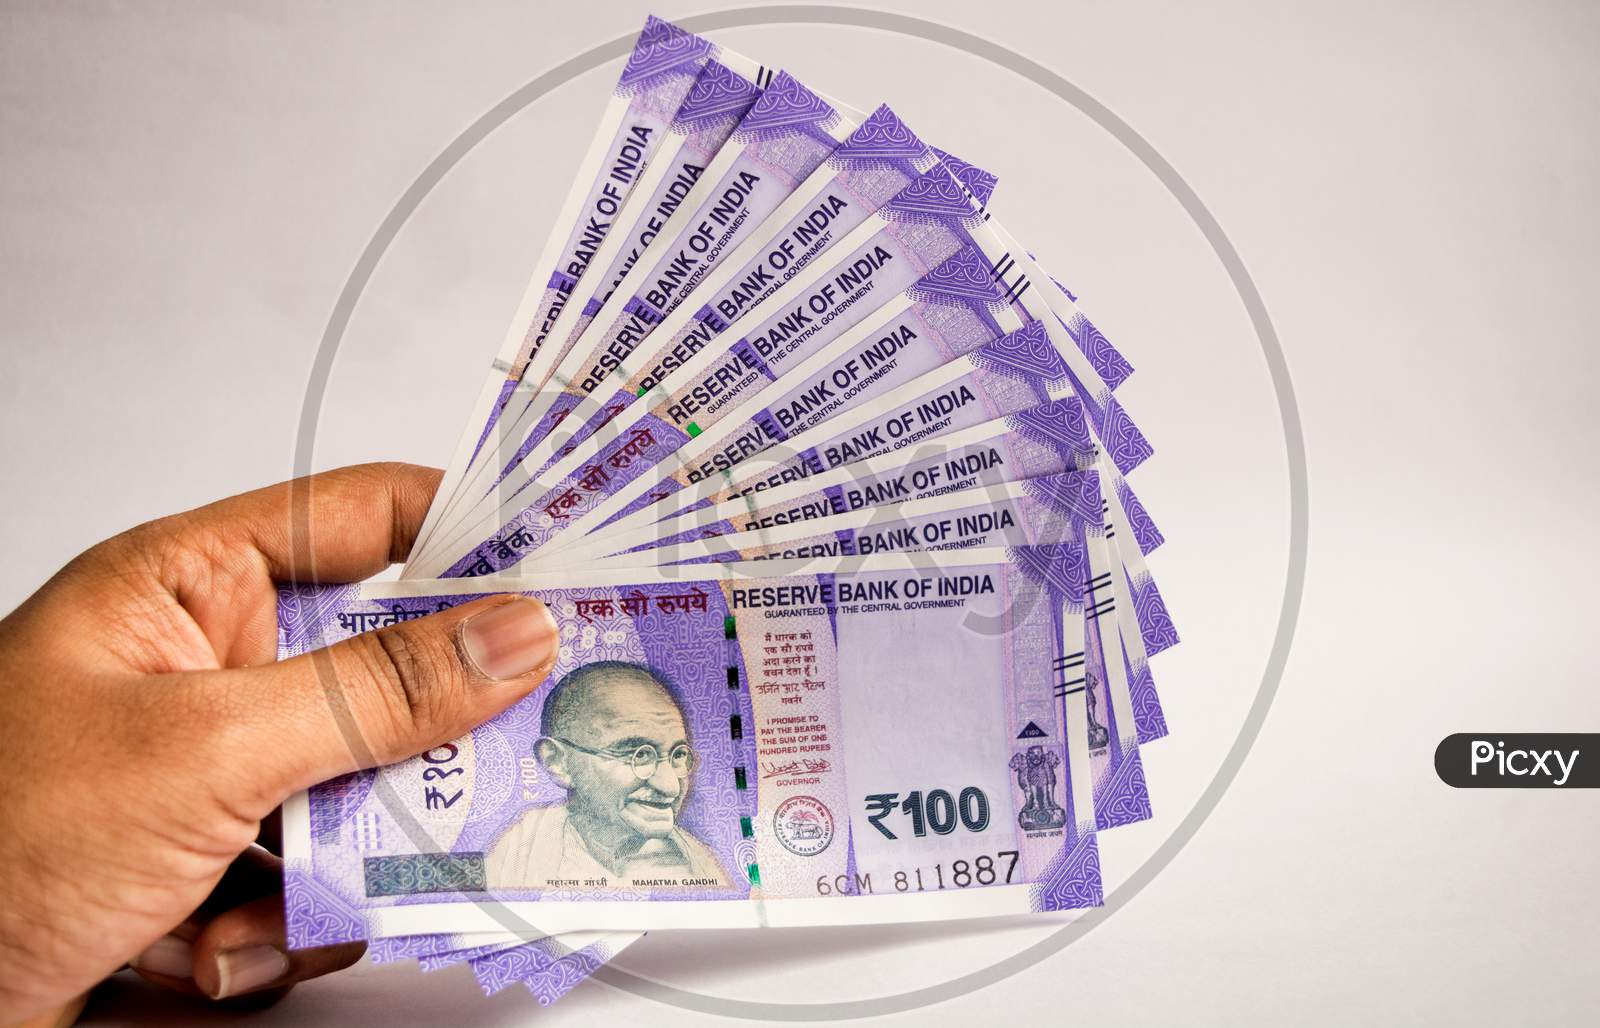 Holding All New 100 Rupees Indian Currencies In Hand On Islolated Background